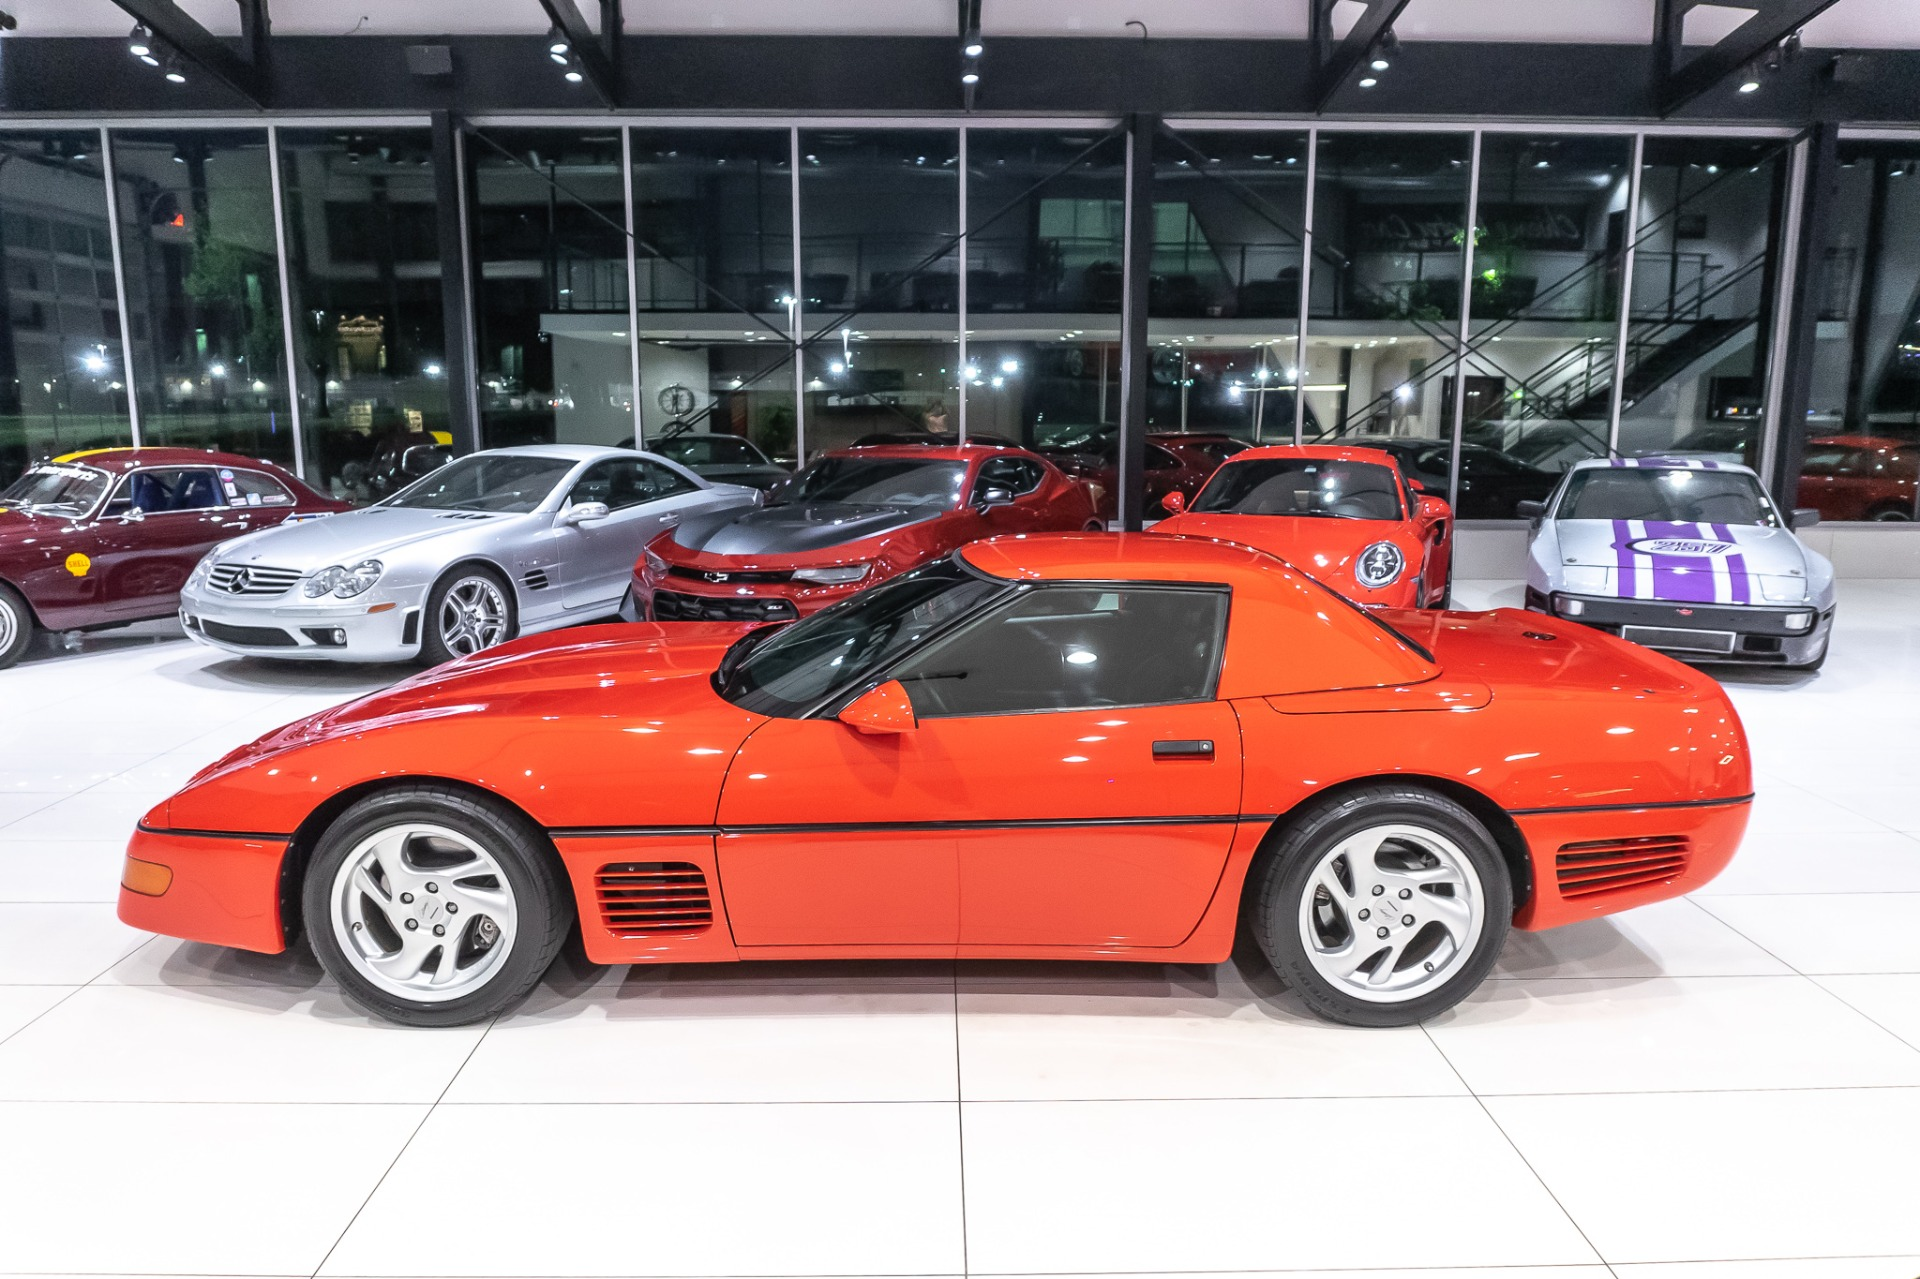 Used-1993-Chevrolet-Corvette-Convertible-CALLAWAY-SUPERNATURAL-AERO-BODY-1-OF-1-COLLECTOR-CAR